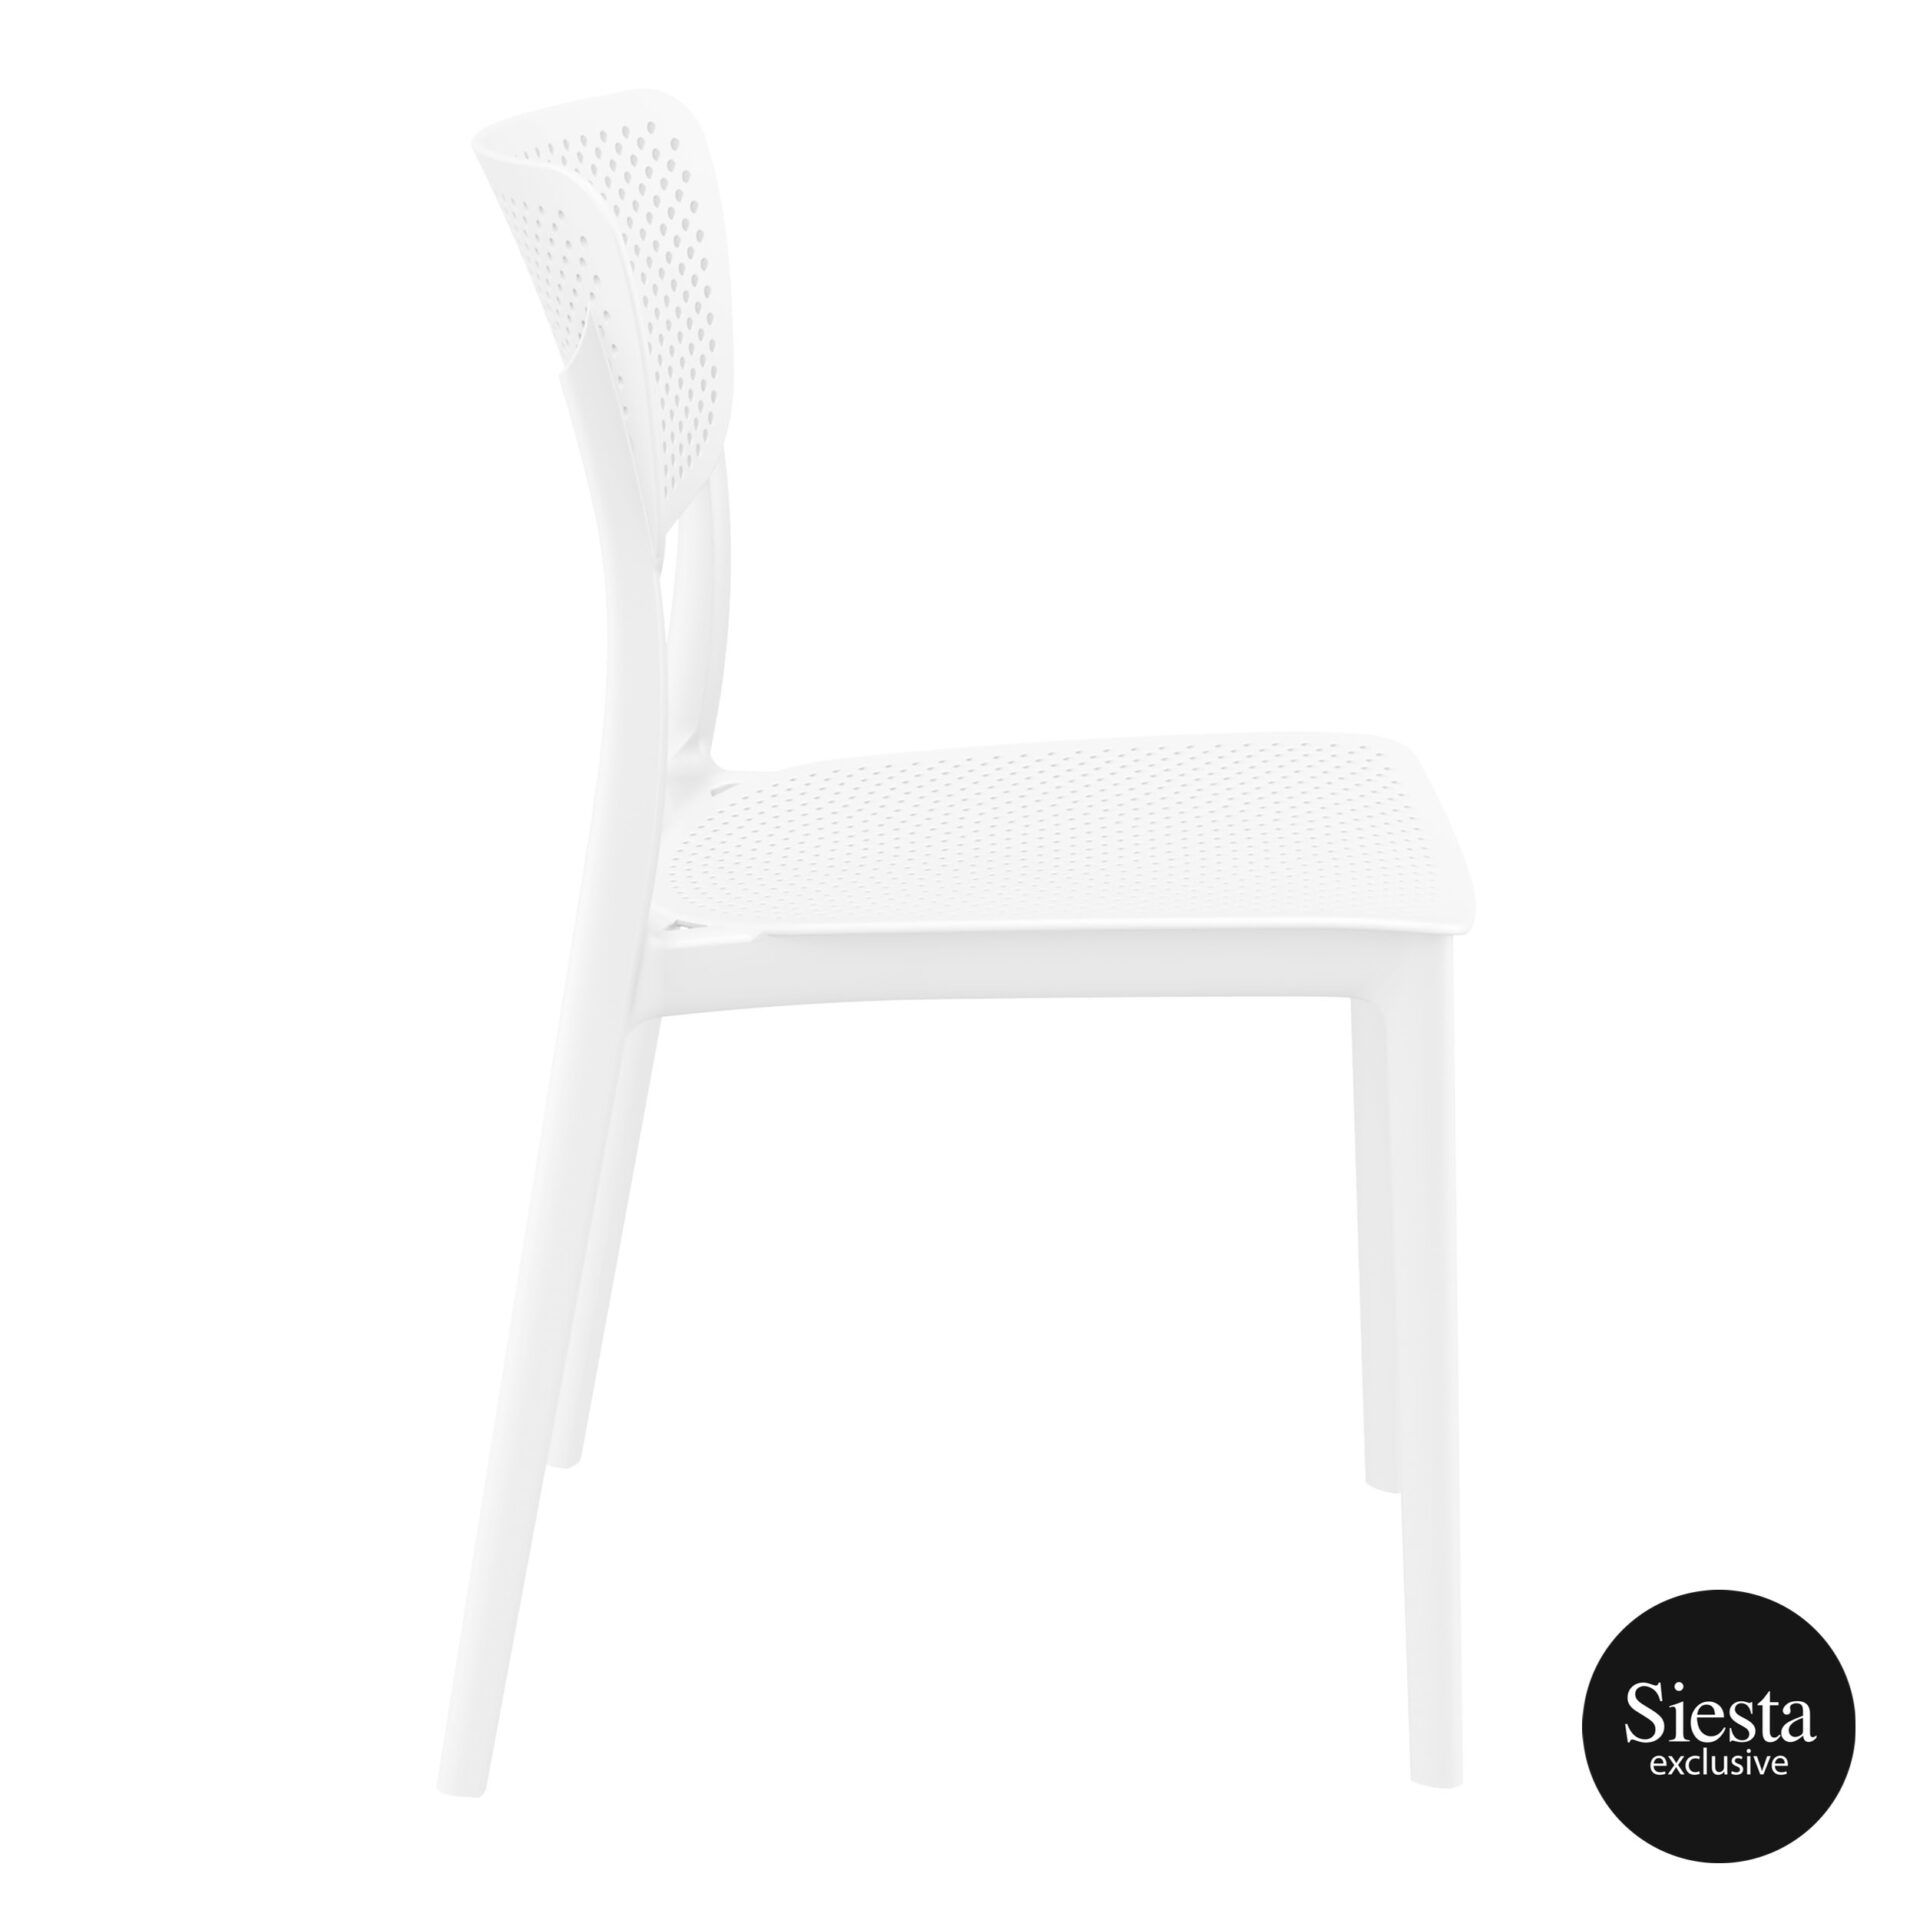 polypropylene hospitality seating lucy chair white side 1